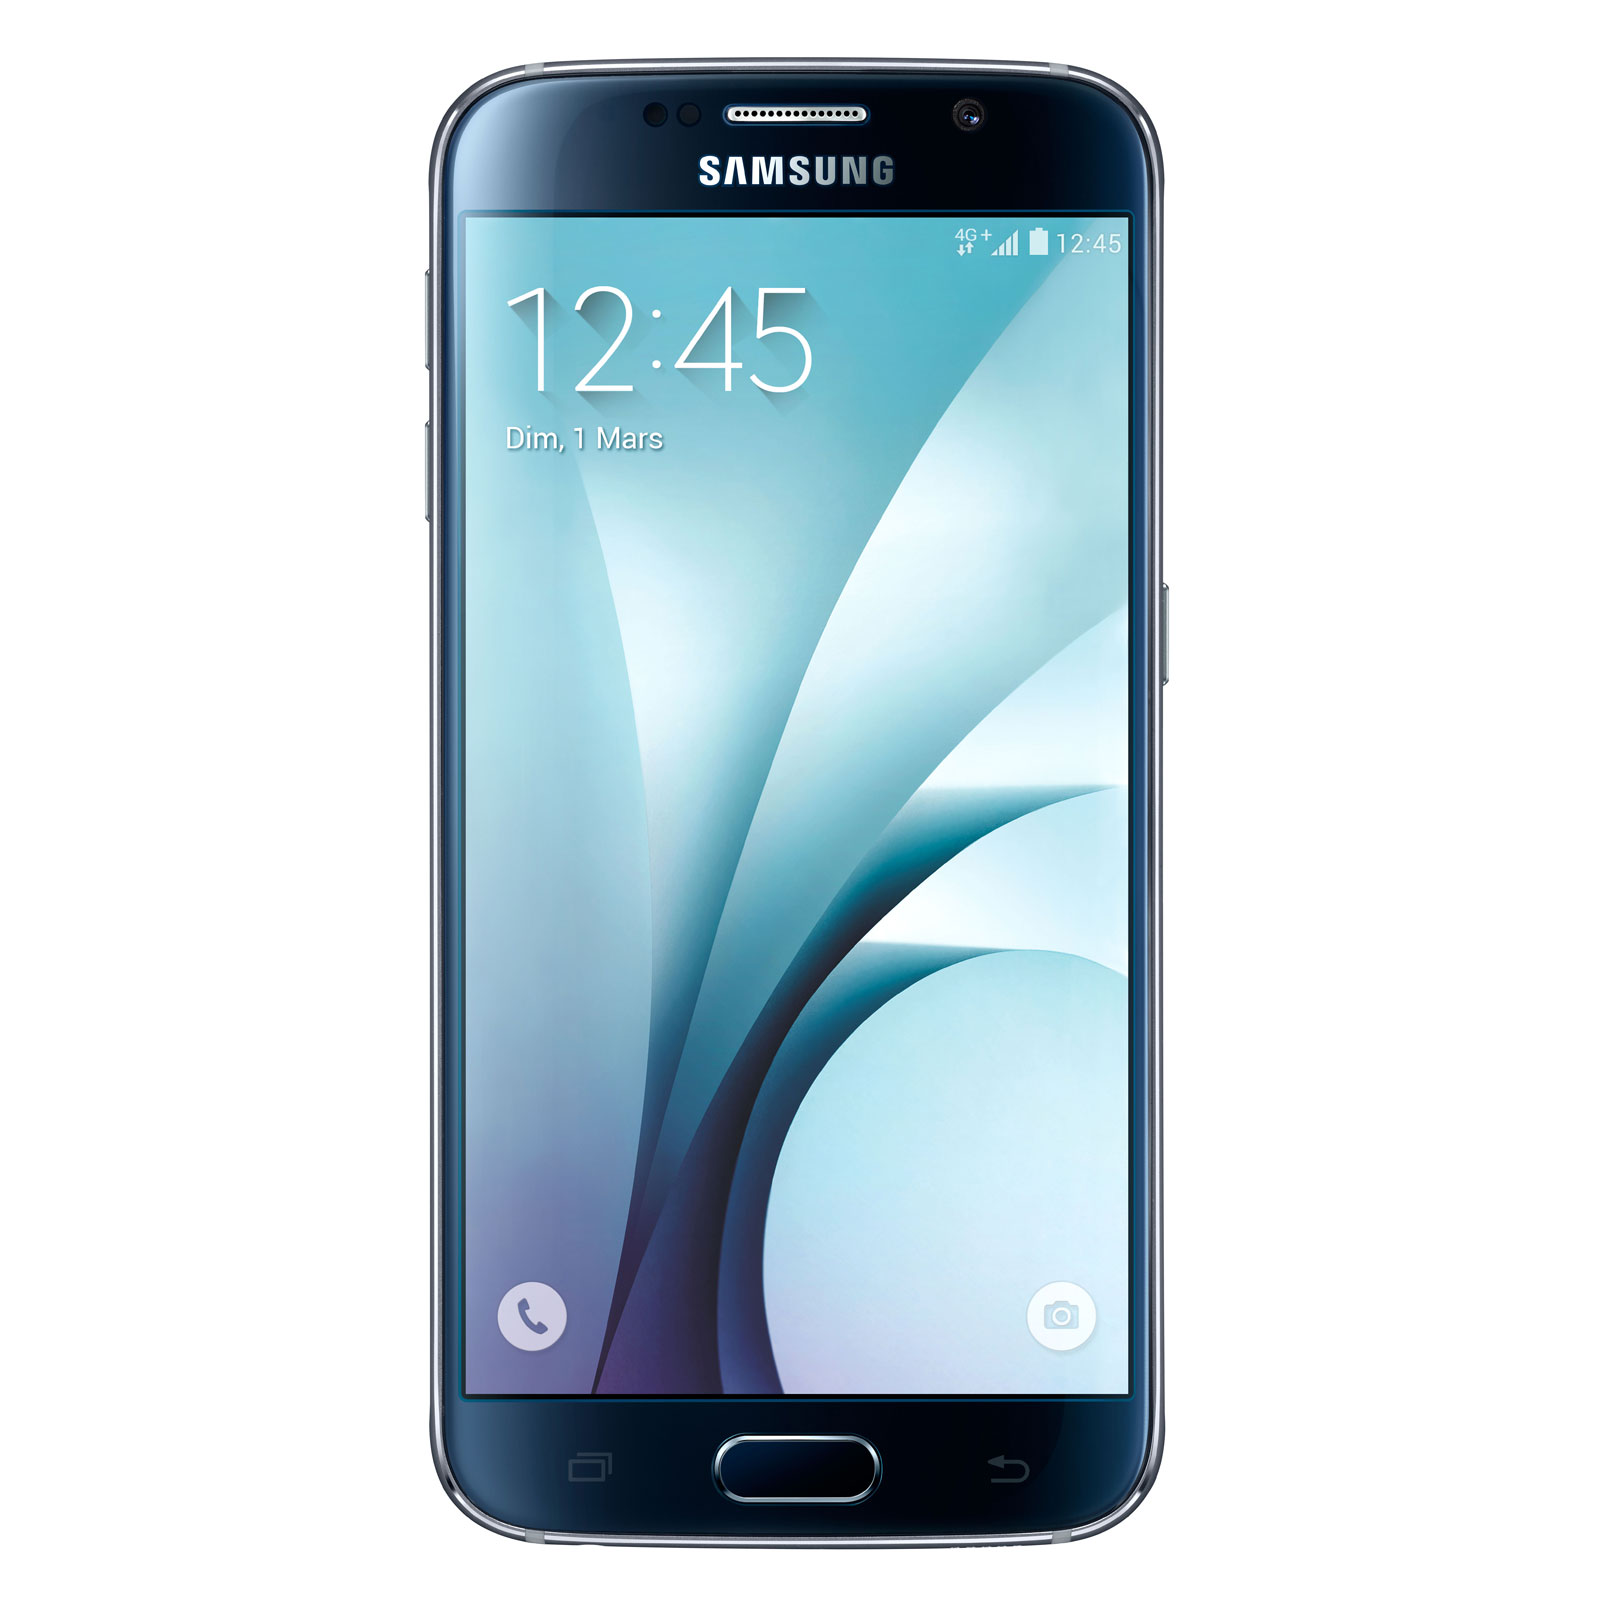 Android 5.1 Lollipop for Samsung Galaxy S6: Here Is the News